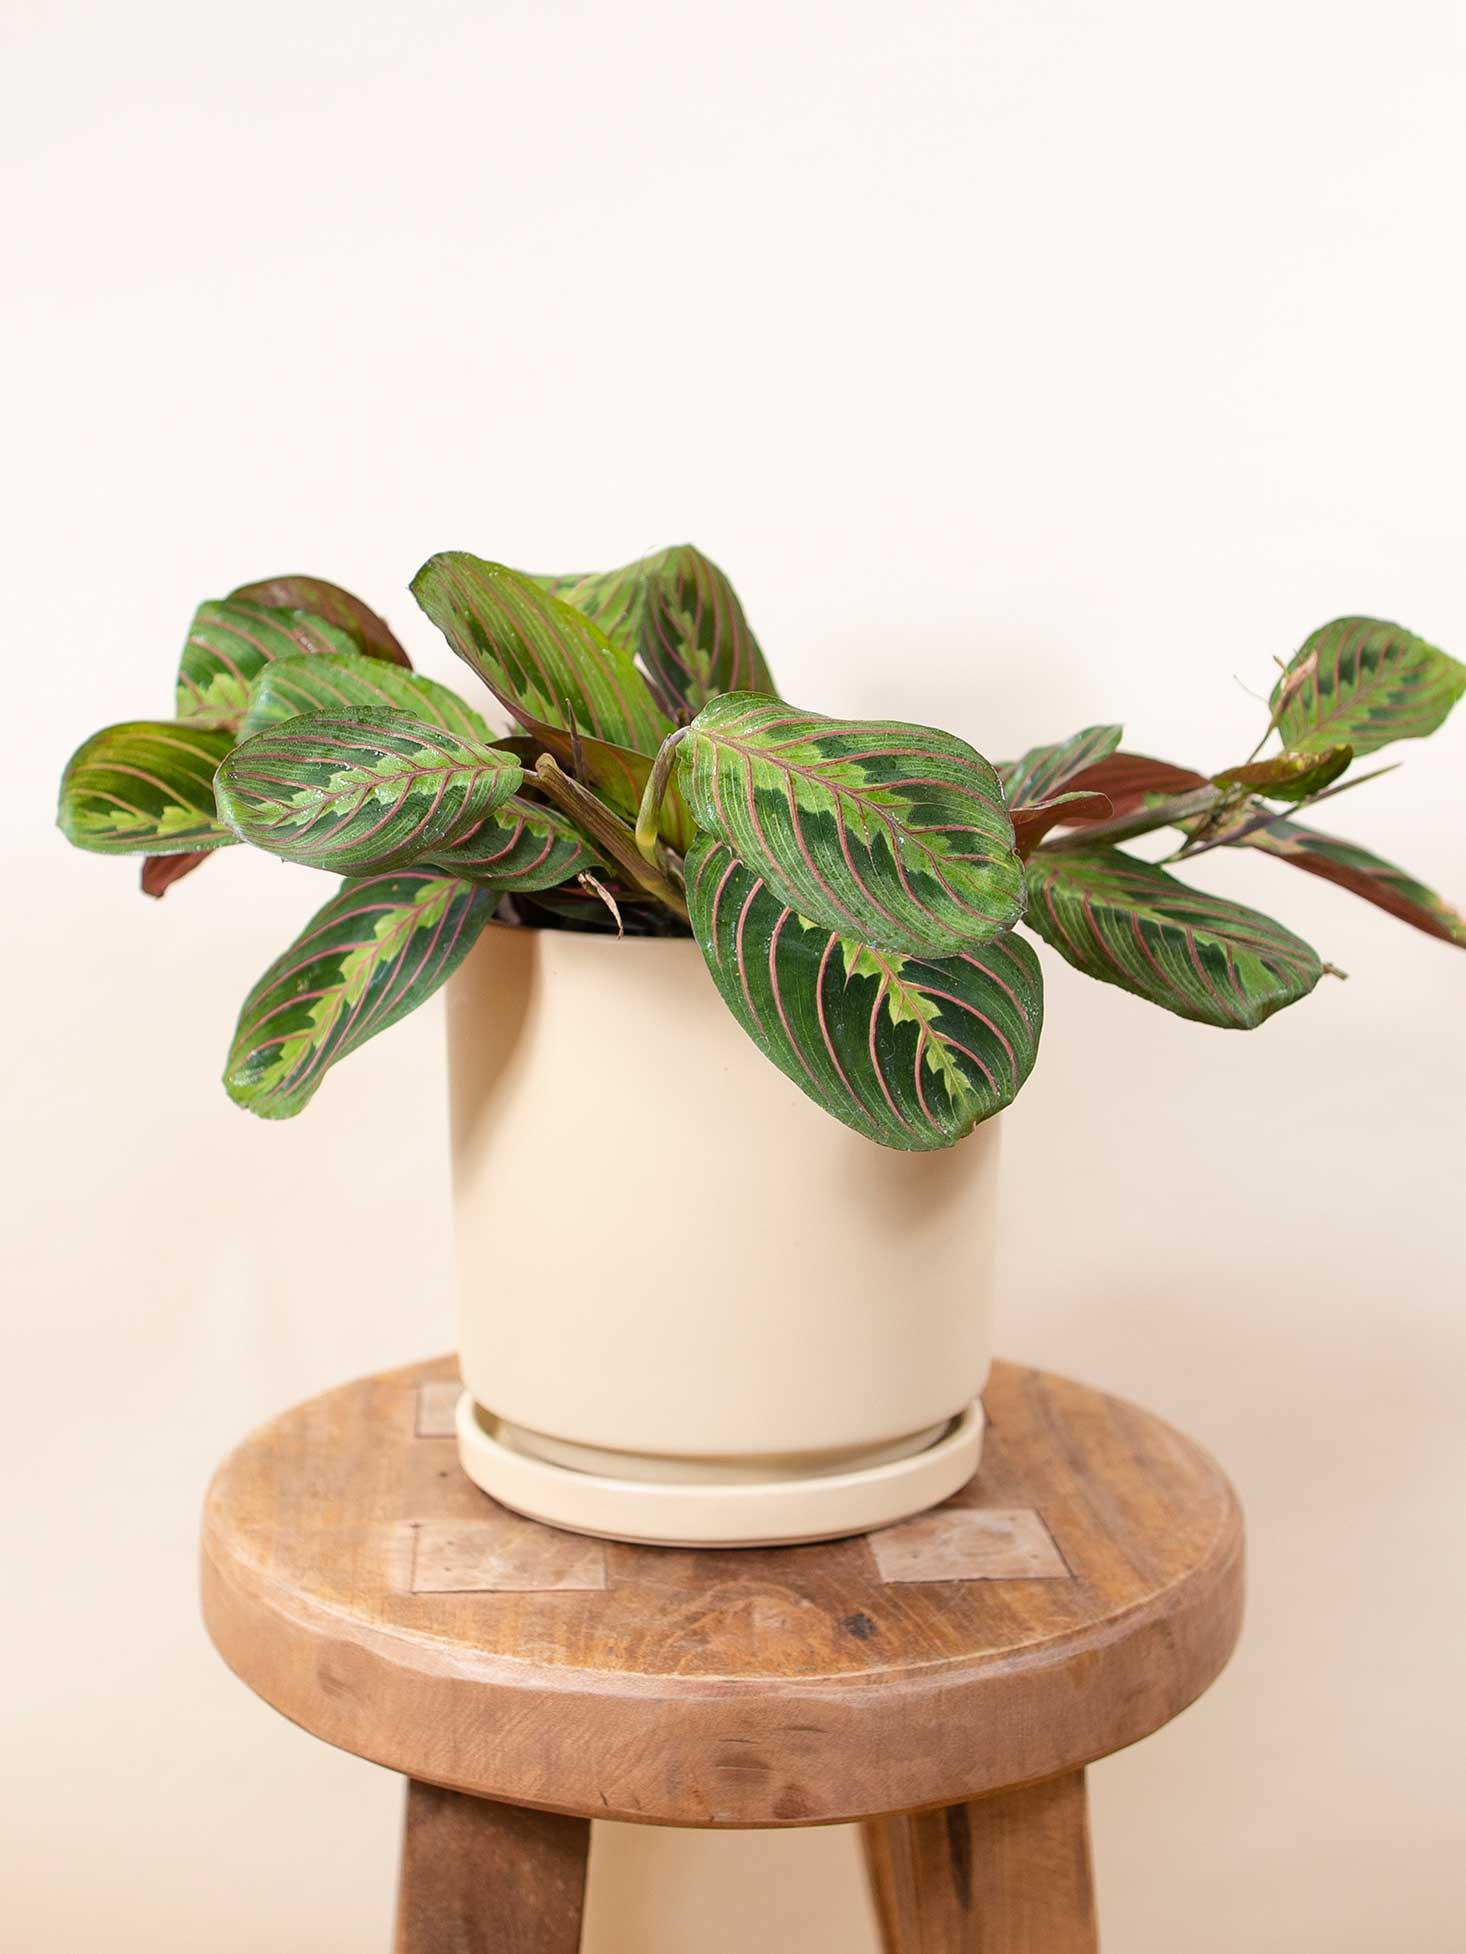 Red prayer plant on a stool